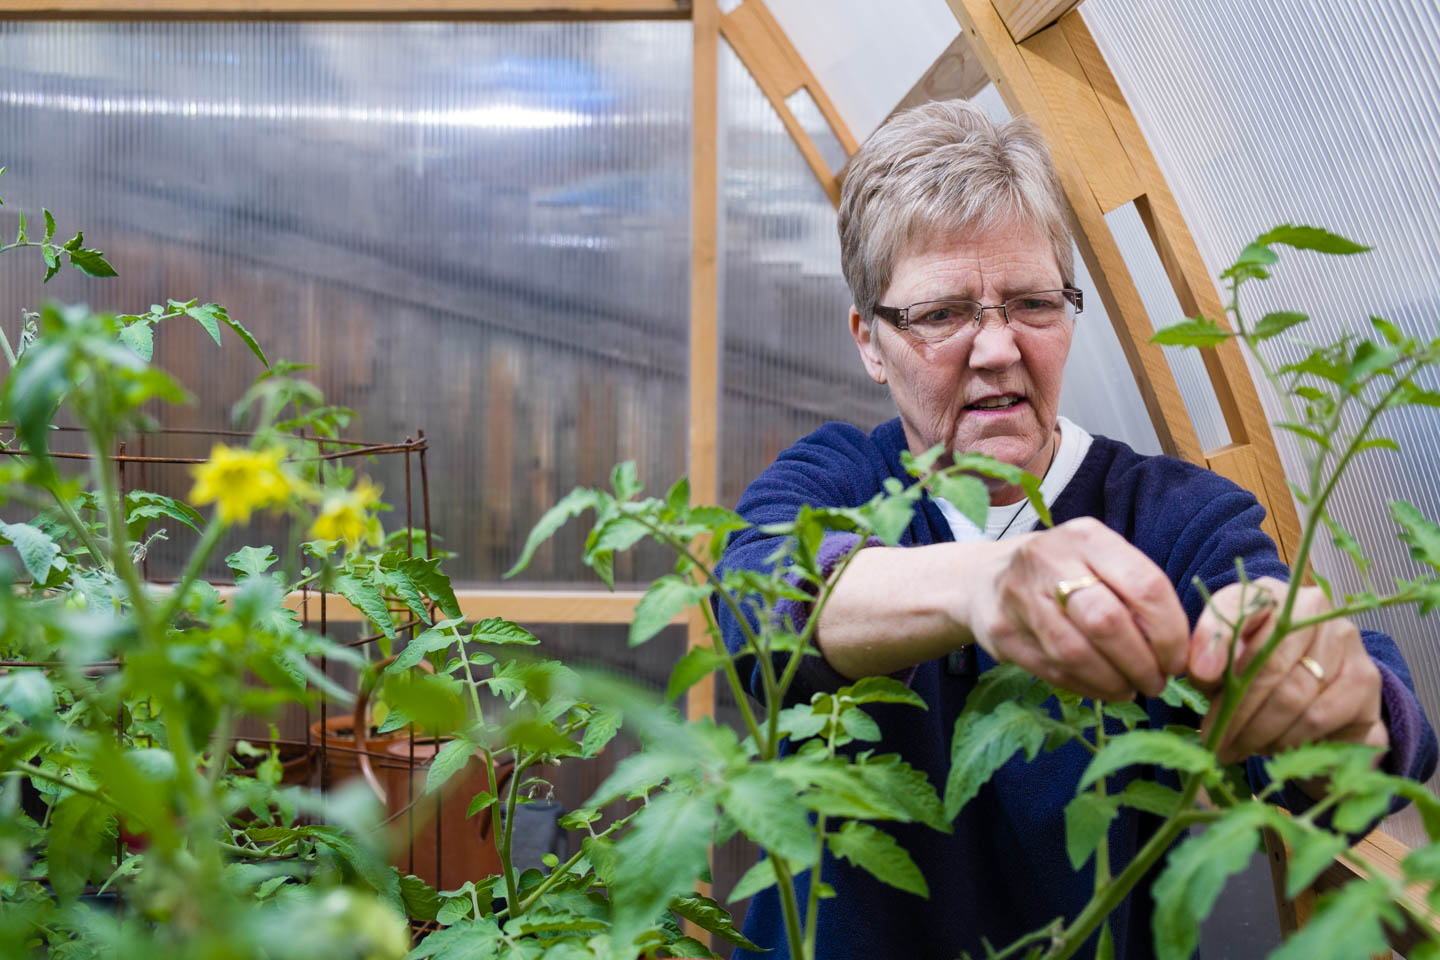 Laurie Wood works in the greenhouse